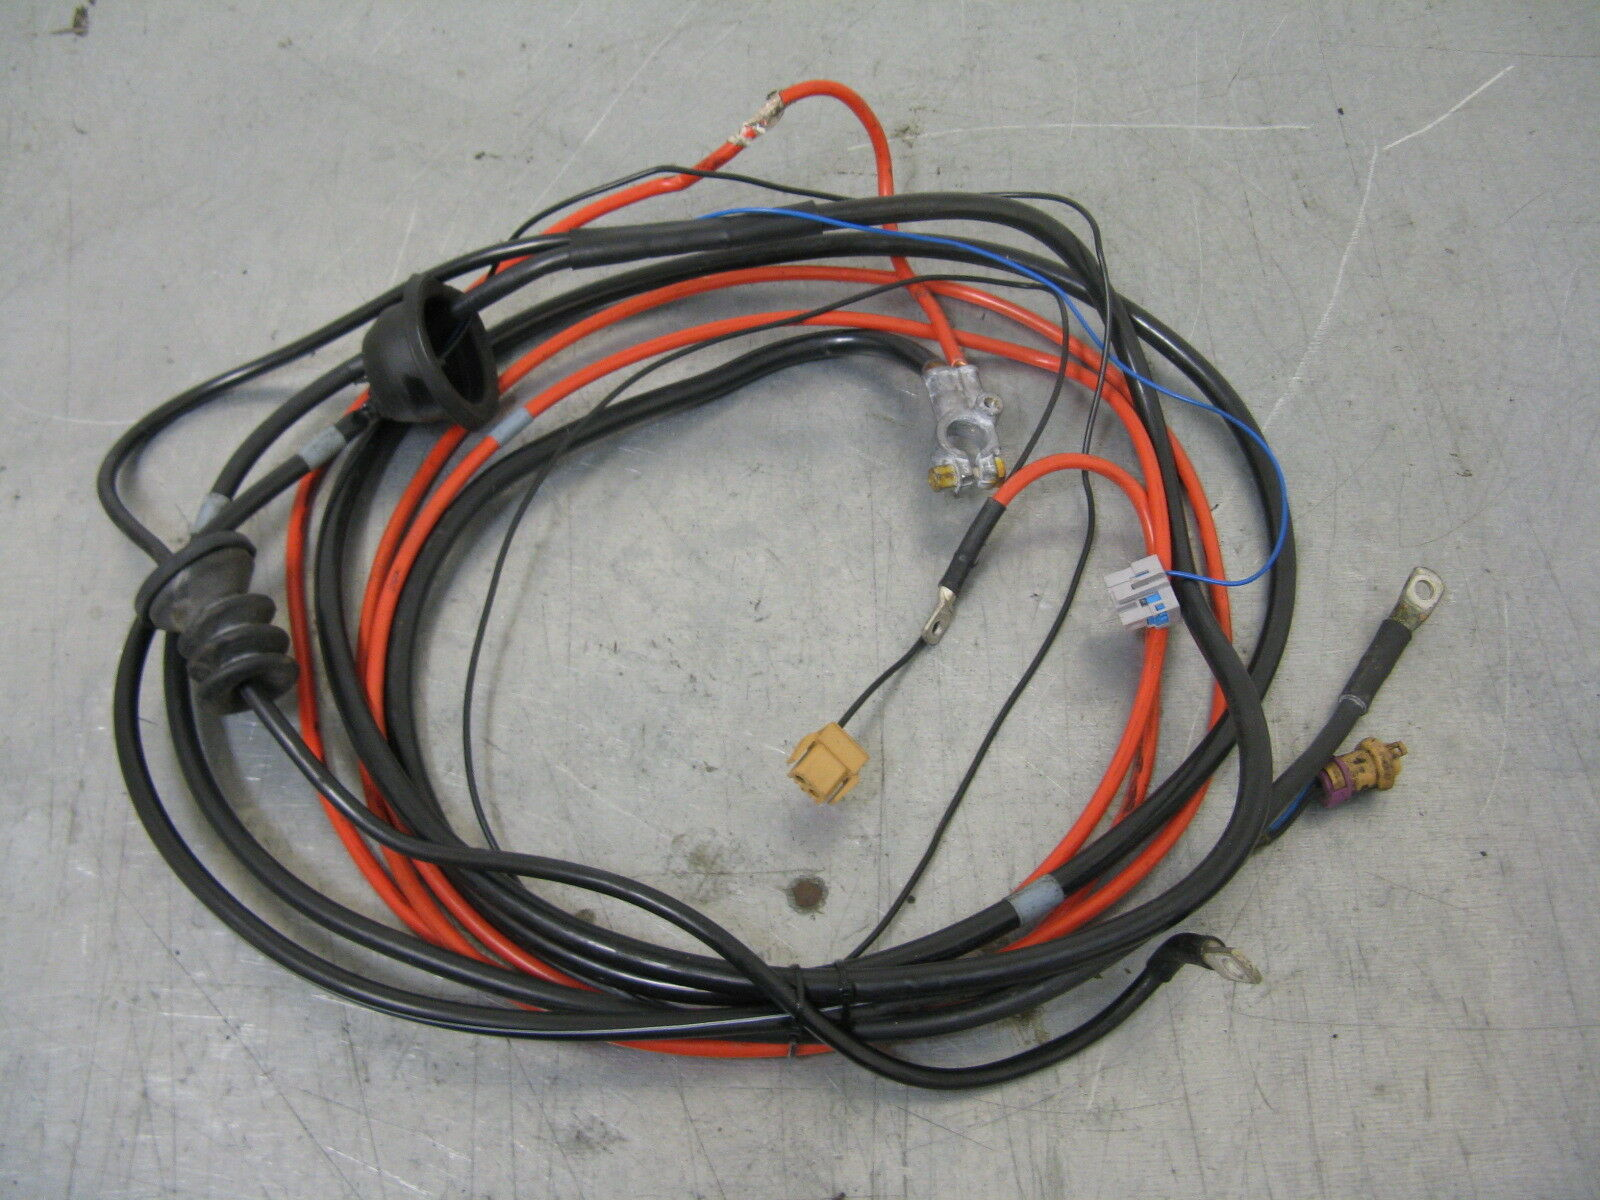 Genuine Wiring Harness Cable Set Battery Plus Pole Audi 100 A6 C4 Specialist Inc 1 Of 1only Available